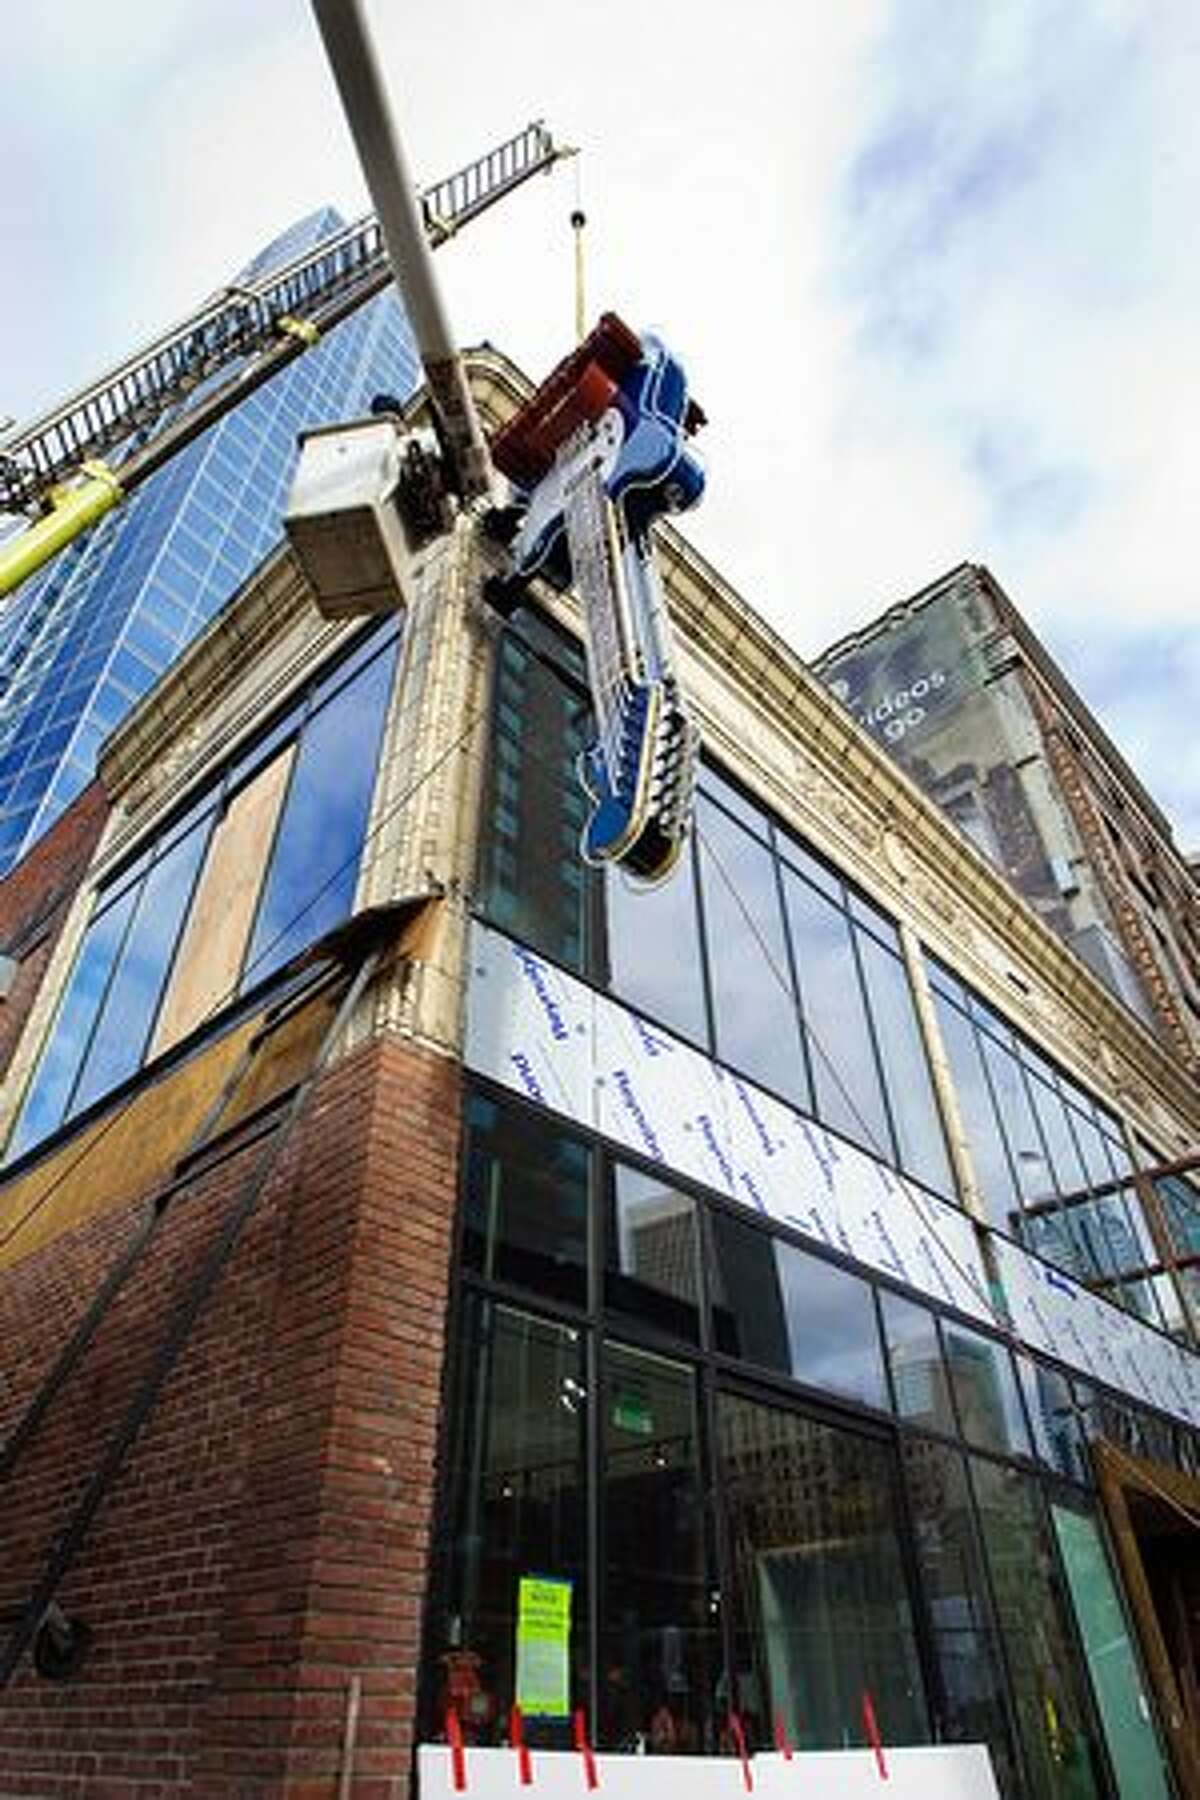 Crews install a model Fender Mustang guitar at 116 Pike St., the site of Seattle's new Hard Rock Cafe. (Photo by Mat Hayward for Hard Rock Cafe Seattle)